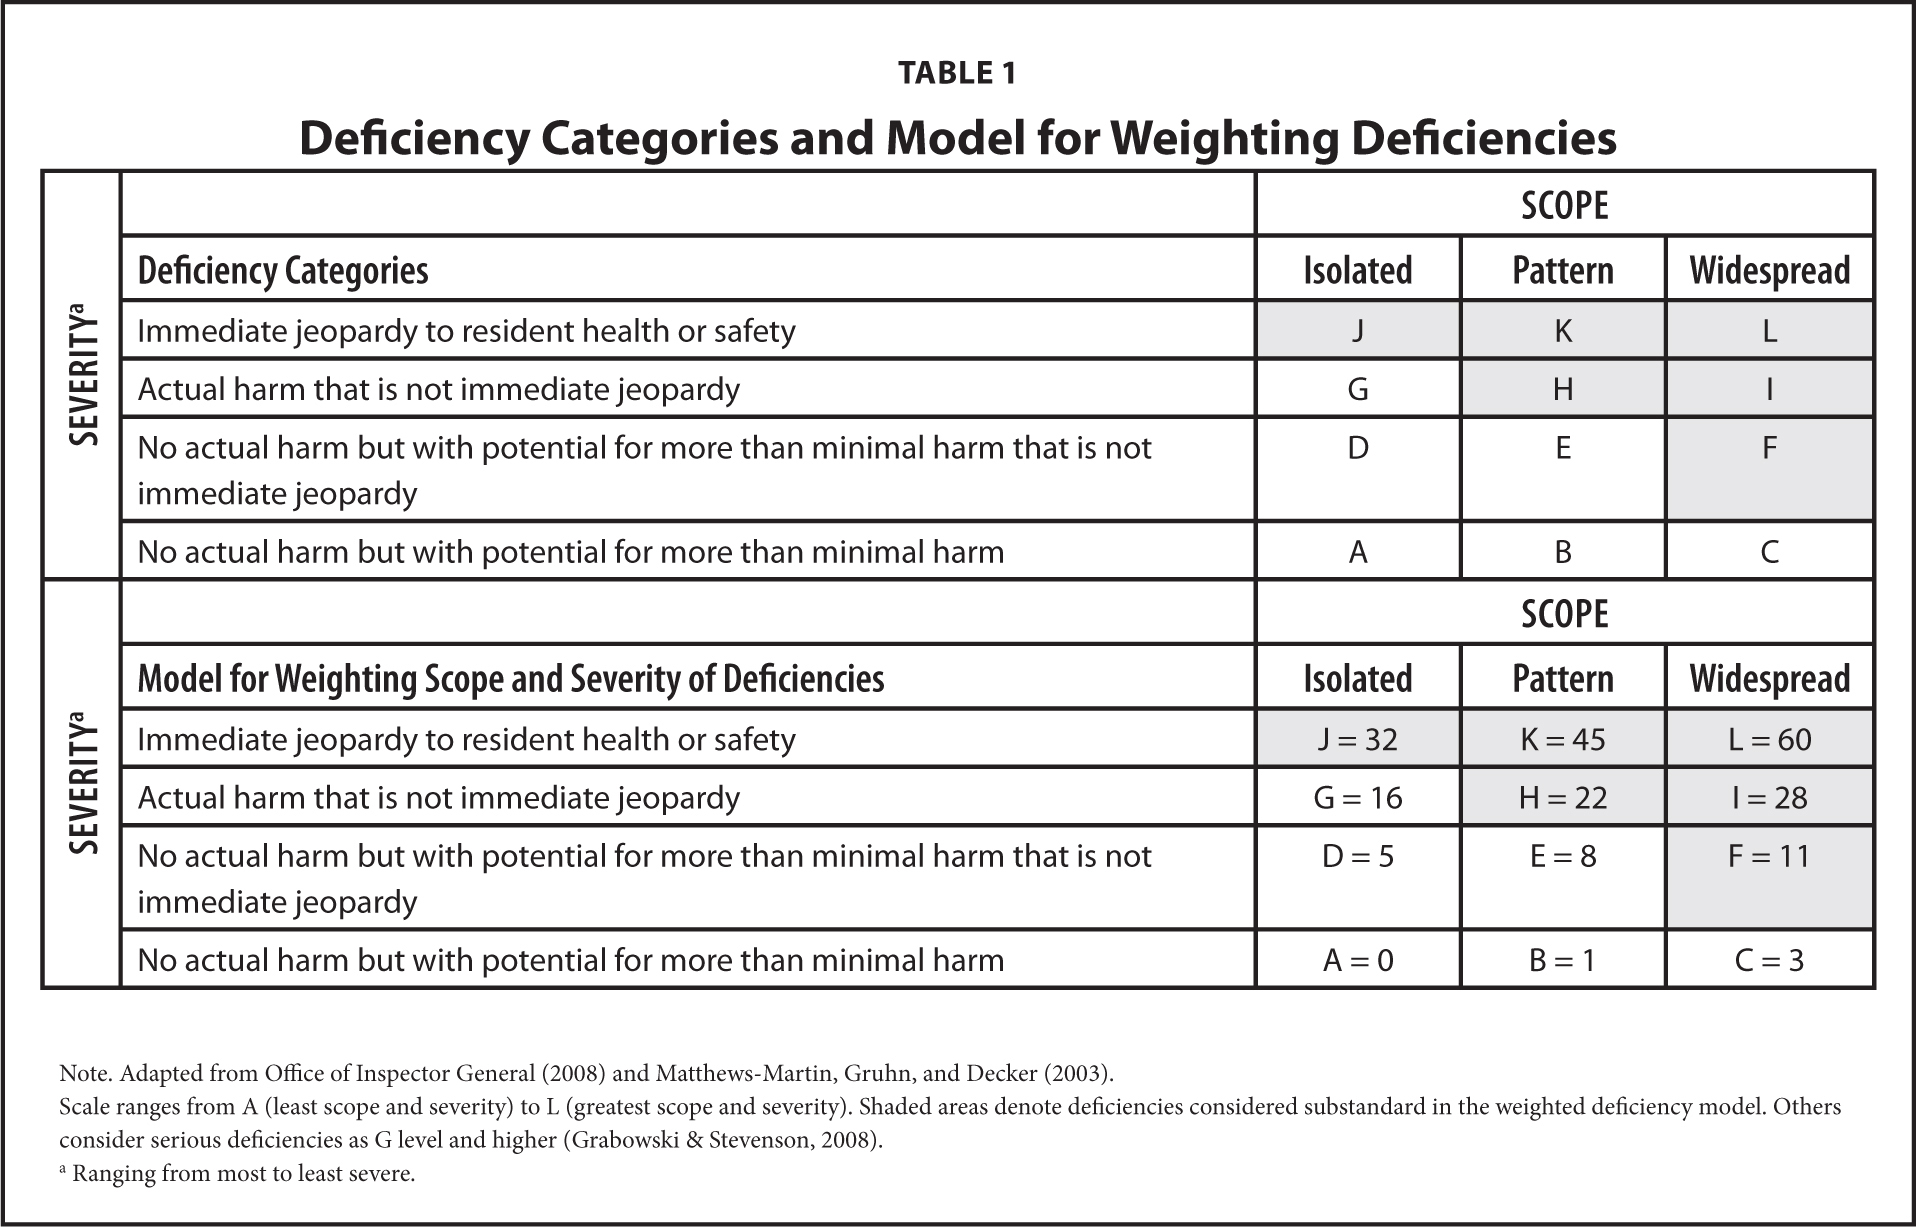 Deficiency Categories and Model for Weighting Deficiencies